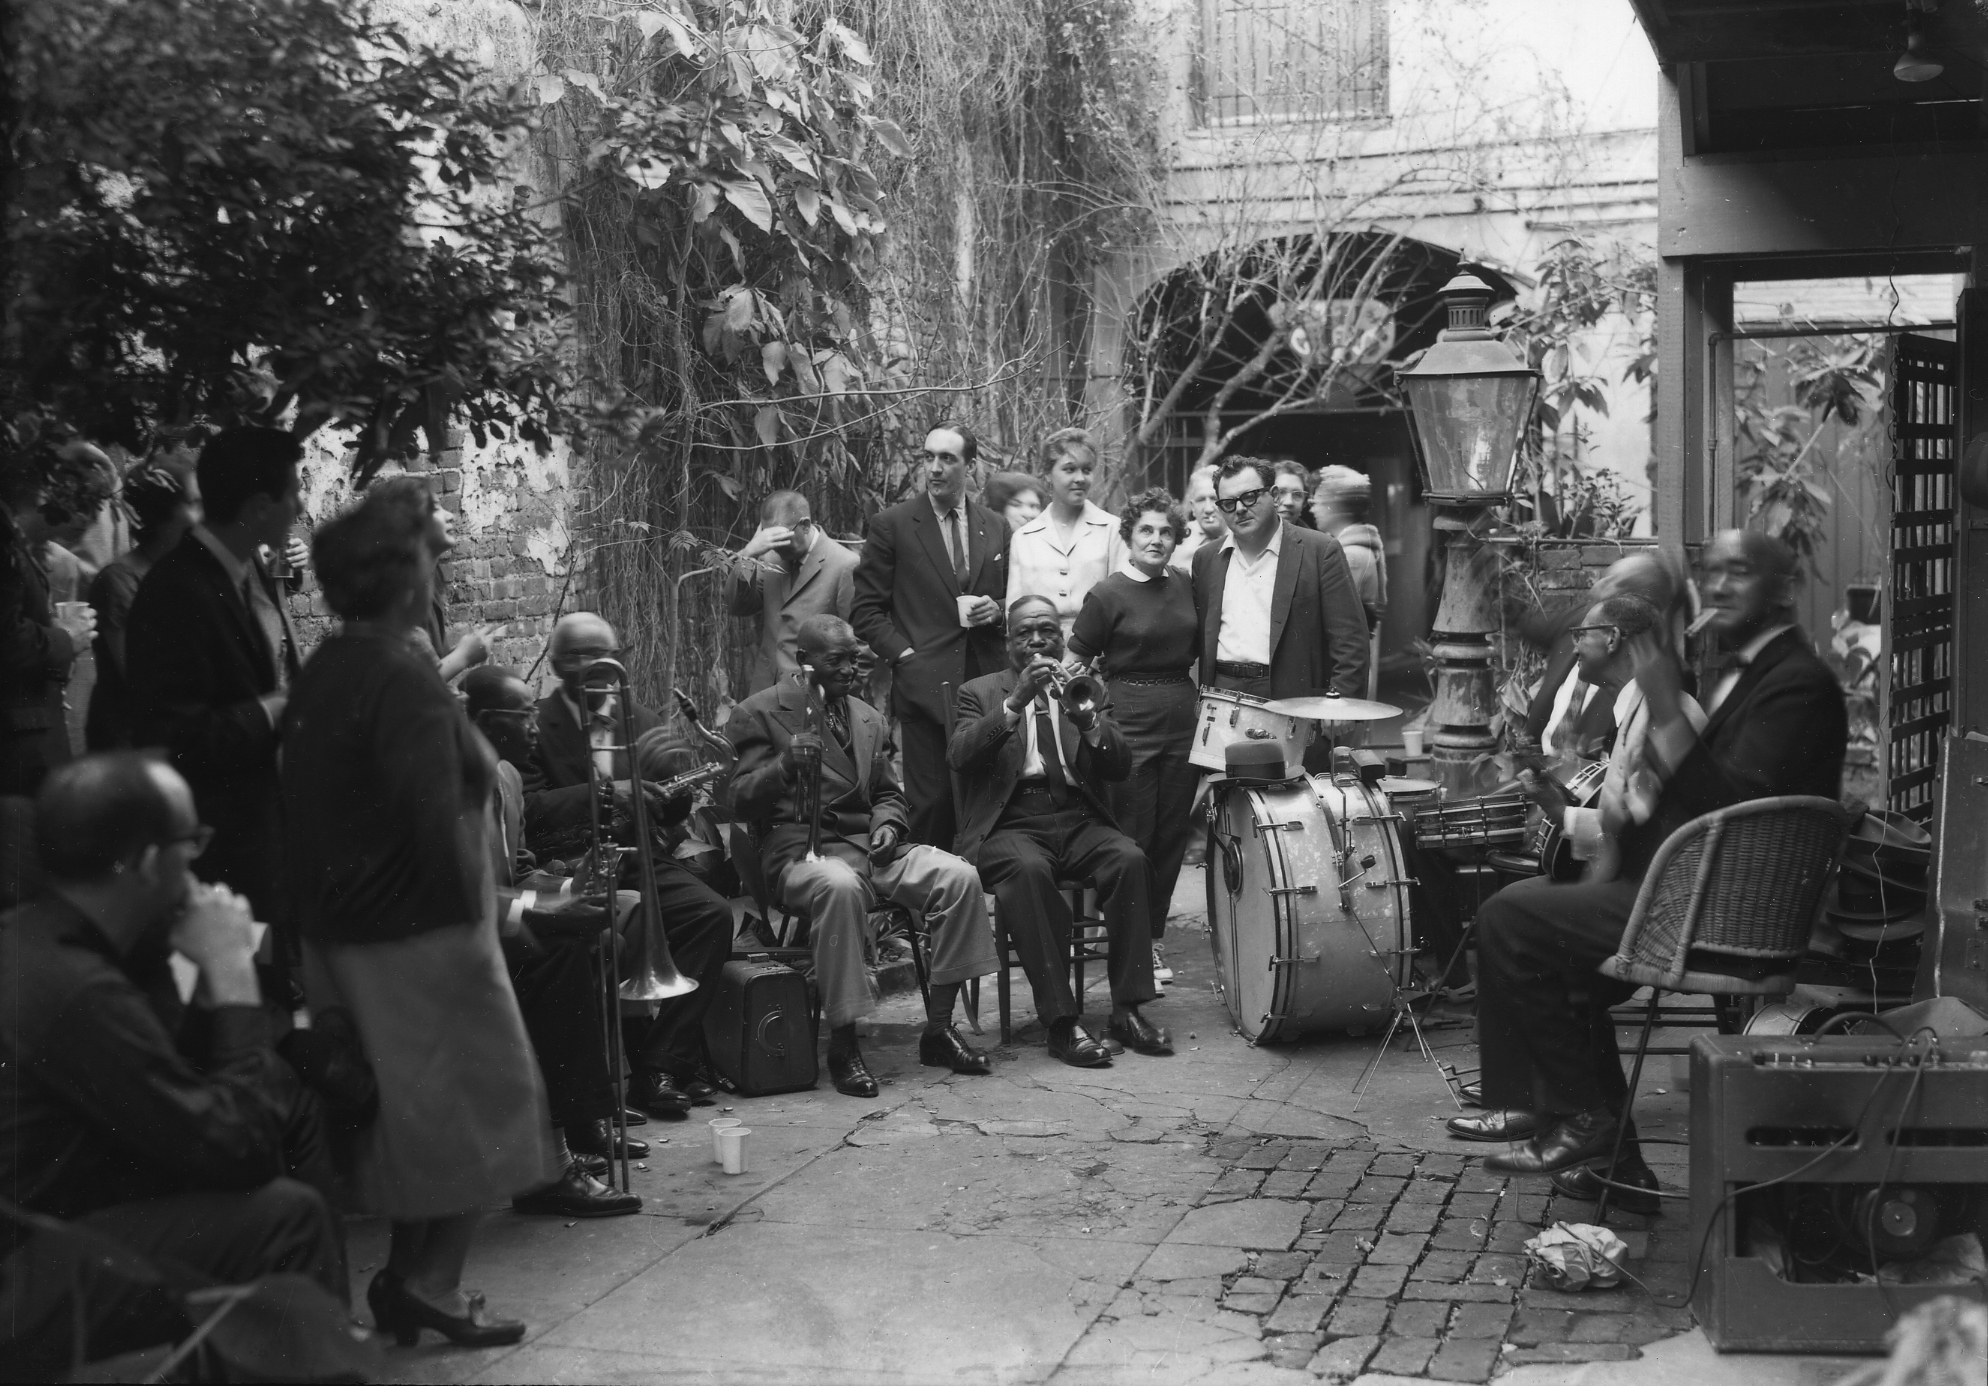 Larry Borenstein and friends in the courtyard at 726 St. Peter Street ca. 1958